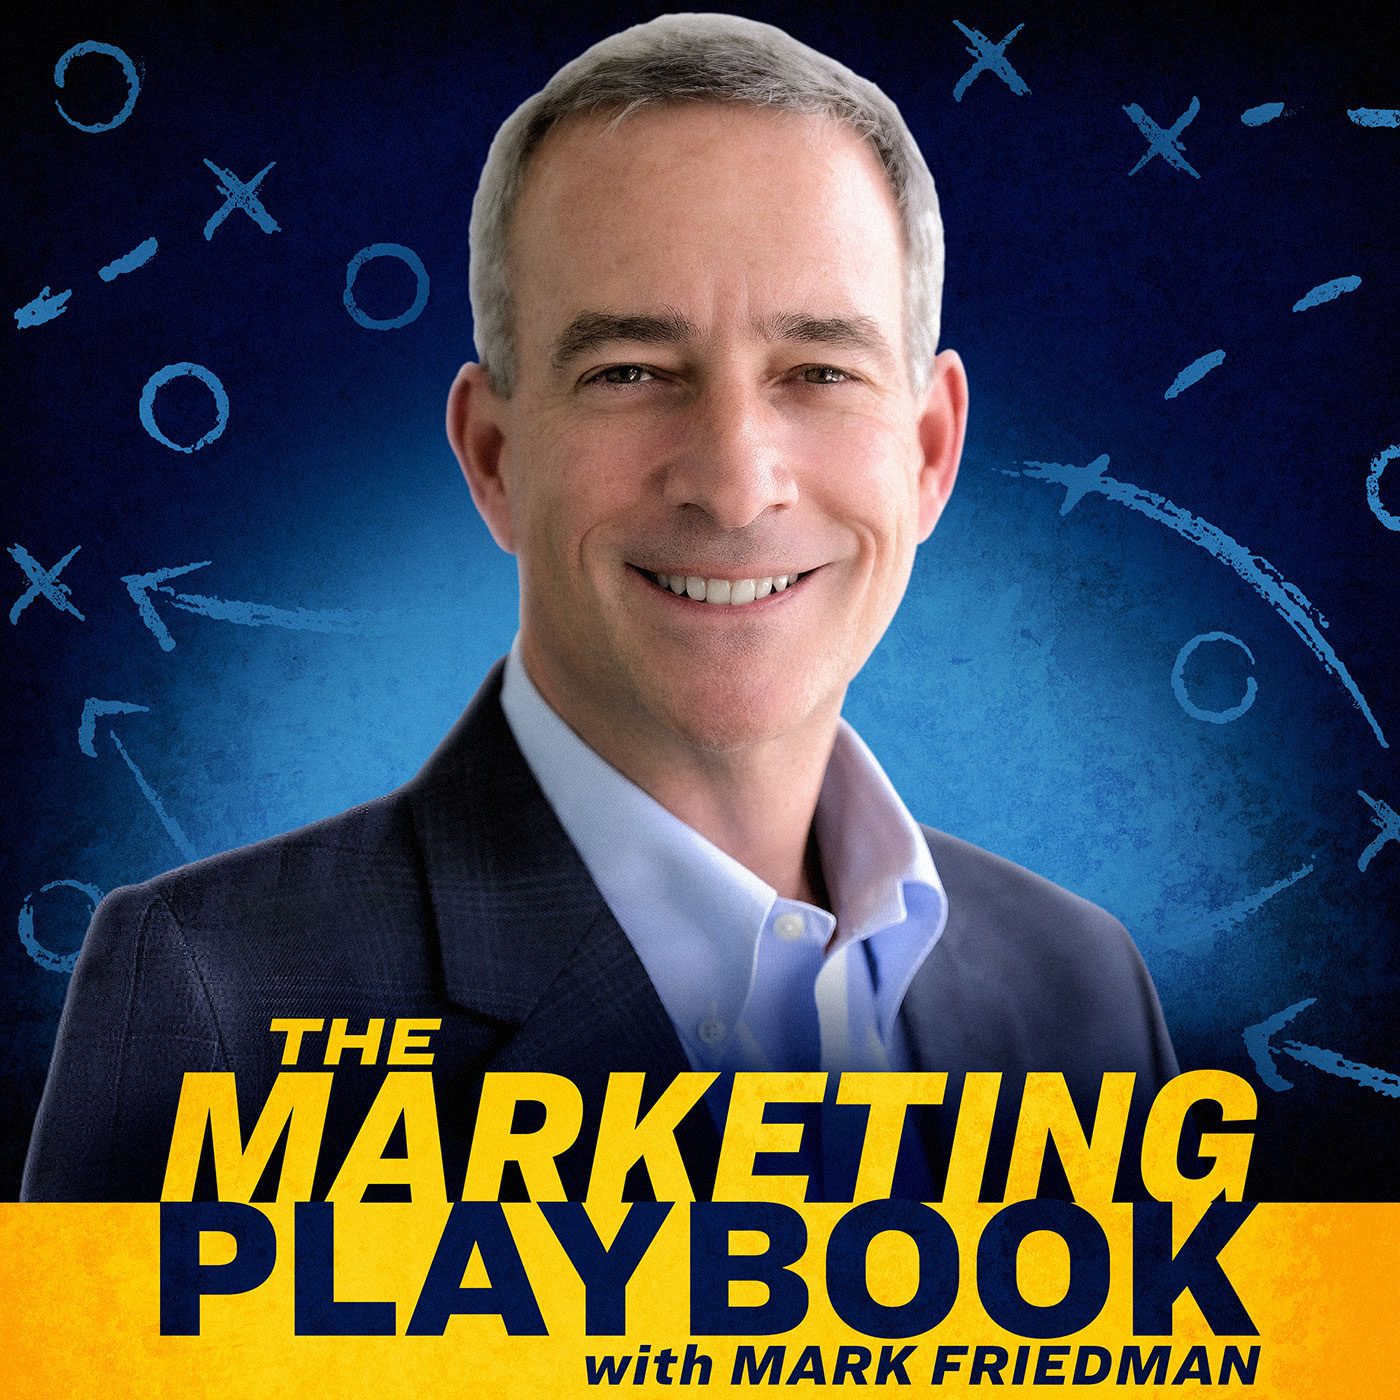 Sam Norpel on The Marketing Playbook Podcast with Mark Friedman: Chief Digital Officer of Juvenescence